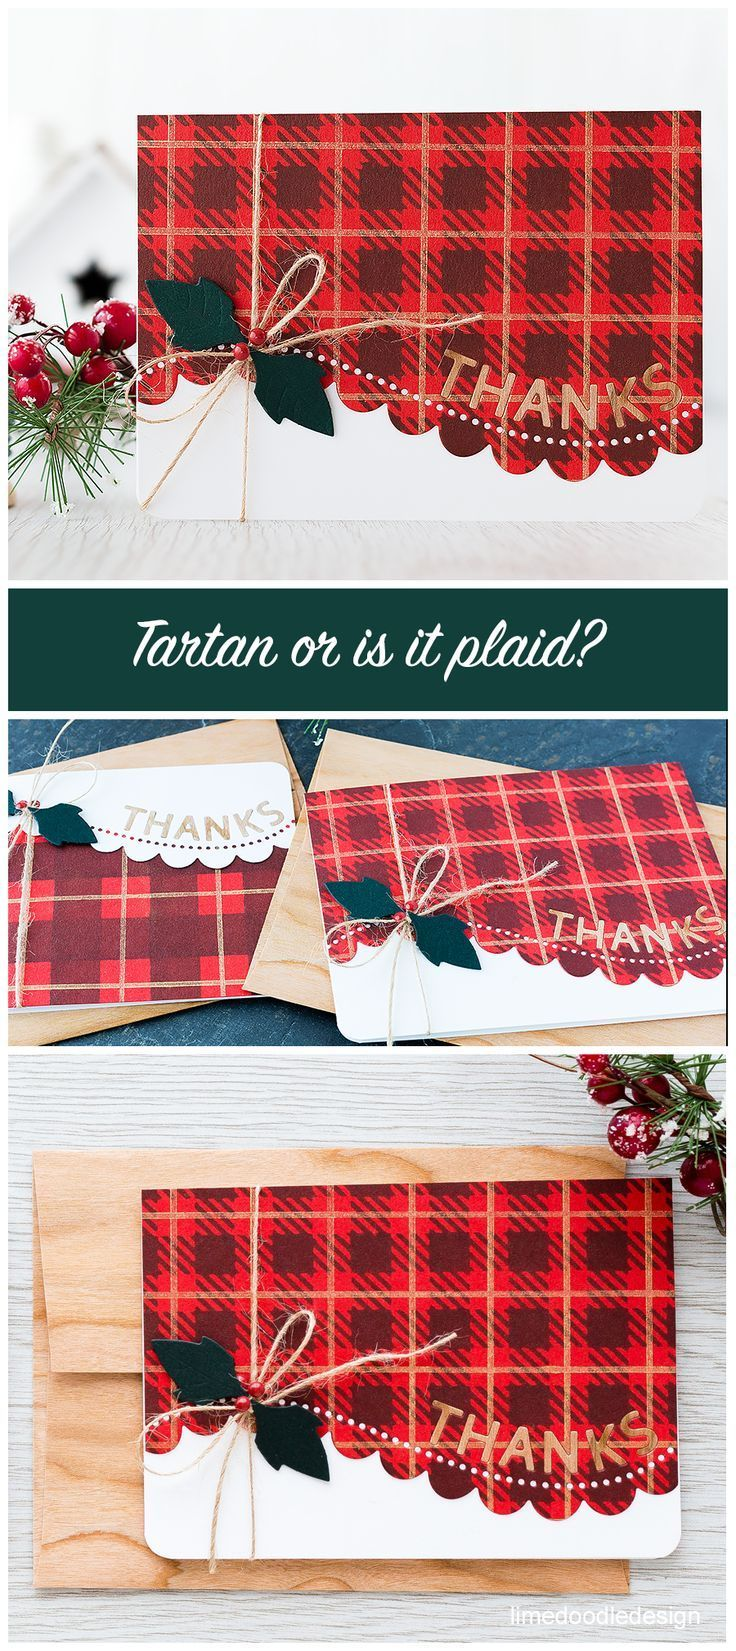 Tartan inspired thank you cards. Find out more by clicking on the following link: http://limedoodledesign.com/2015/11/plaid-or-is-it-tartan/